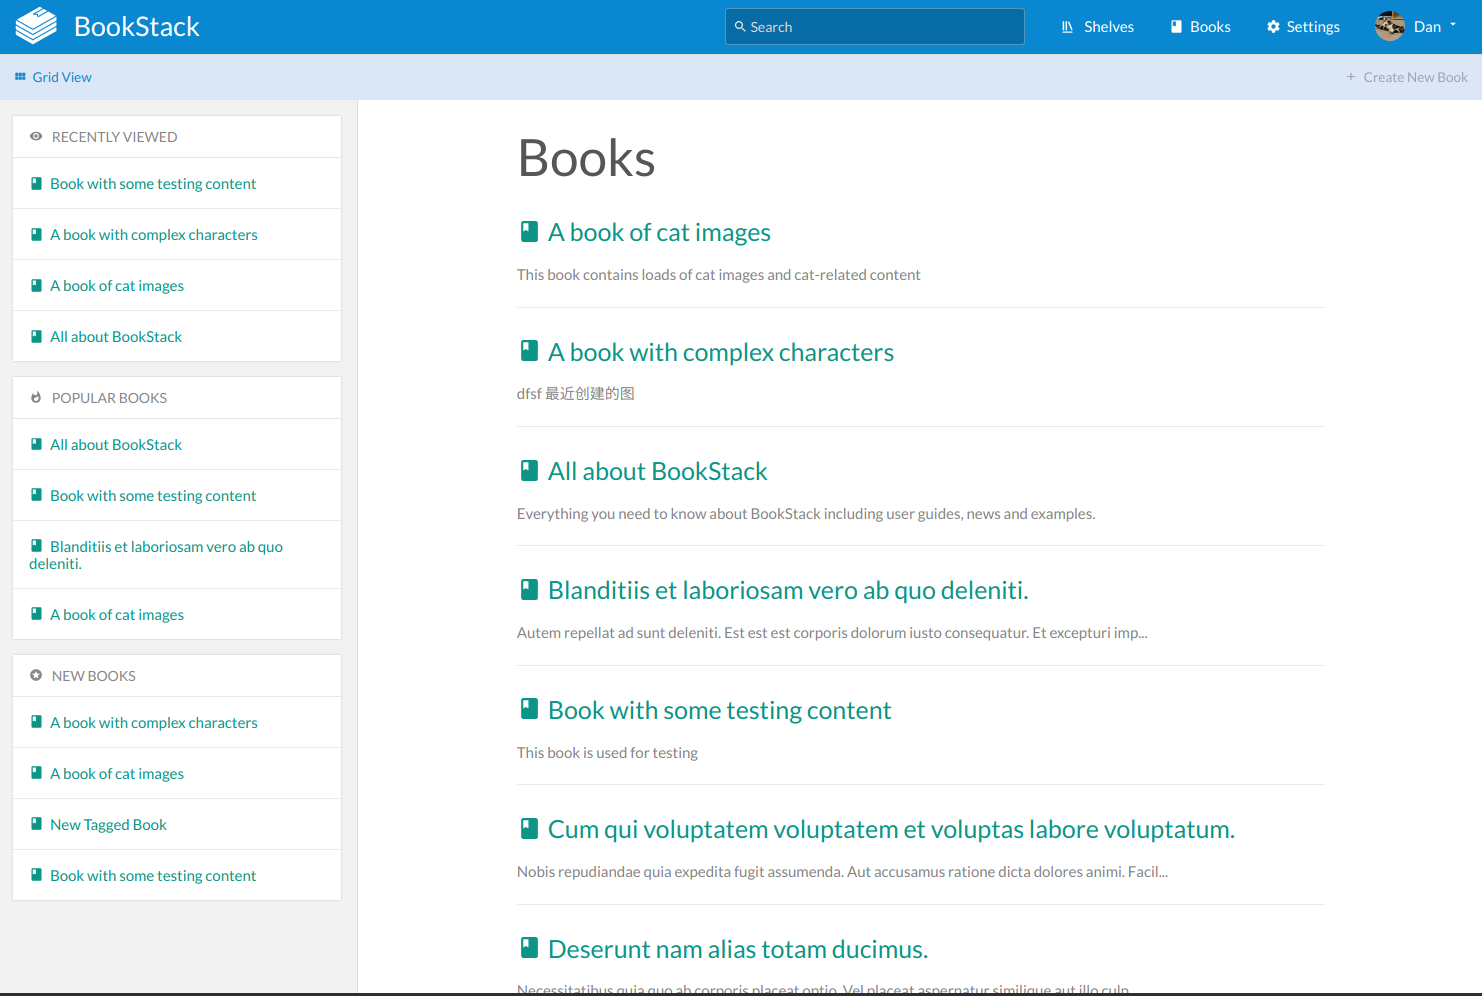 bookstack_books_redesign_old